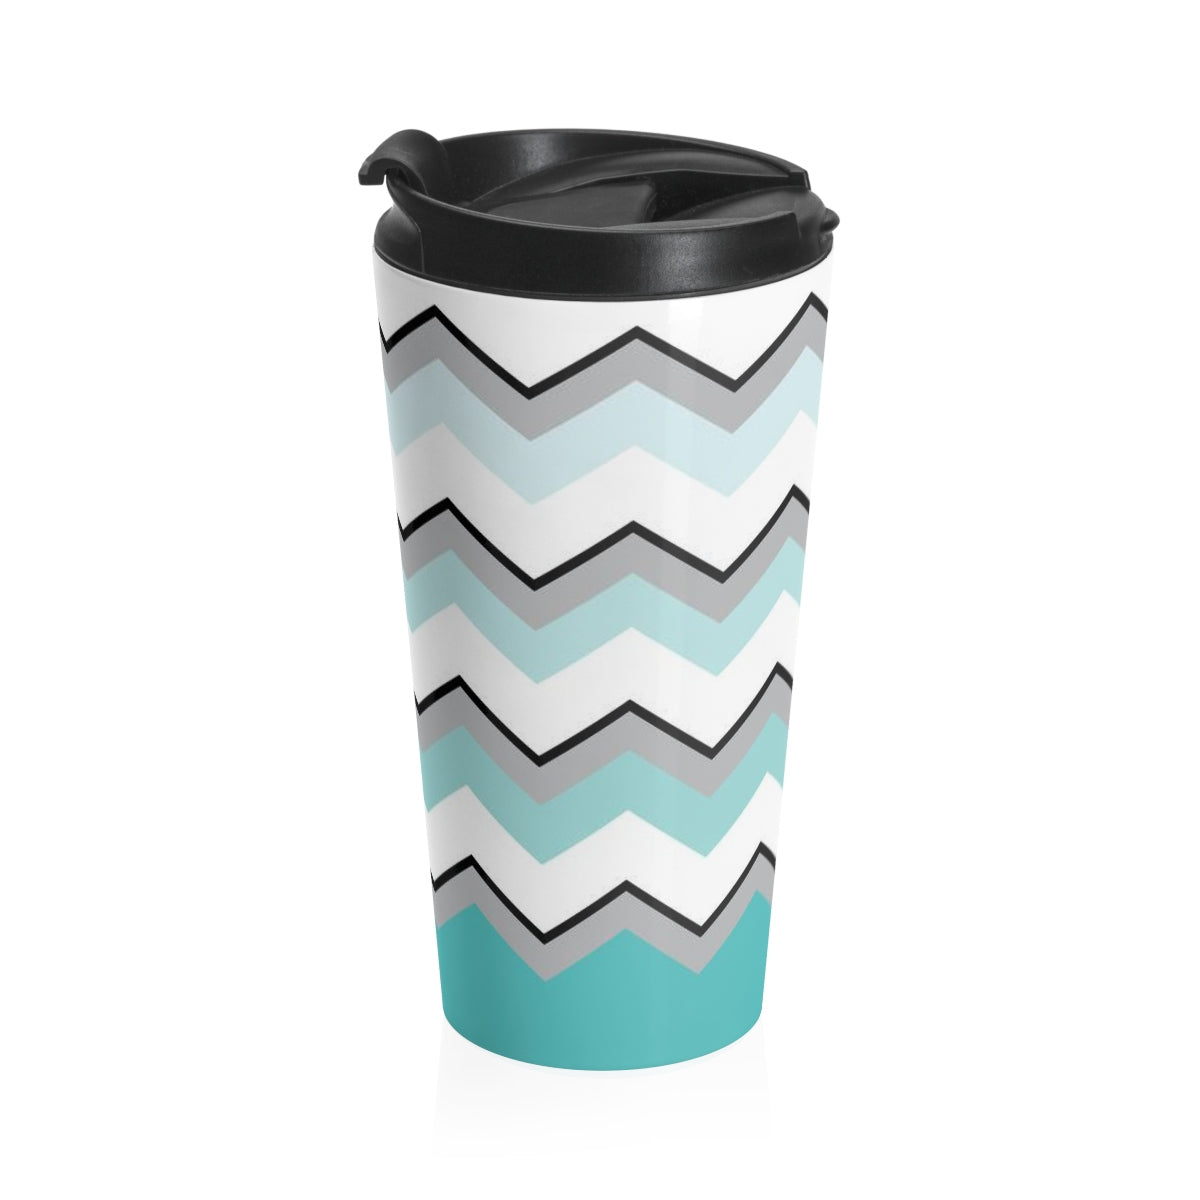 Ombre Teal Chevron Stainless Steel Travel Mug